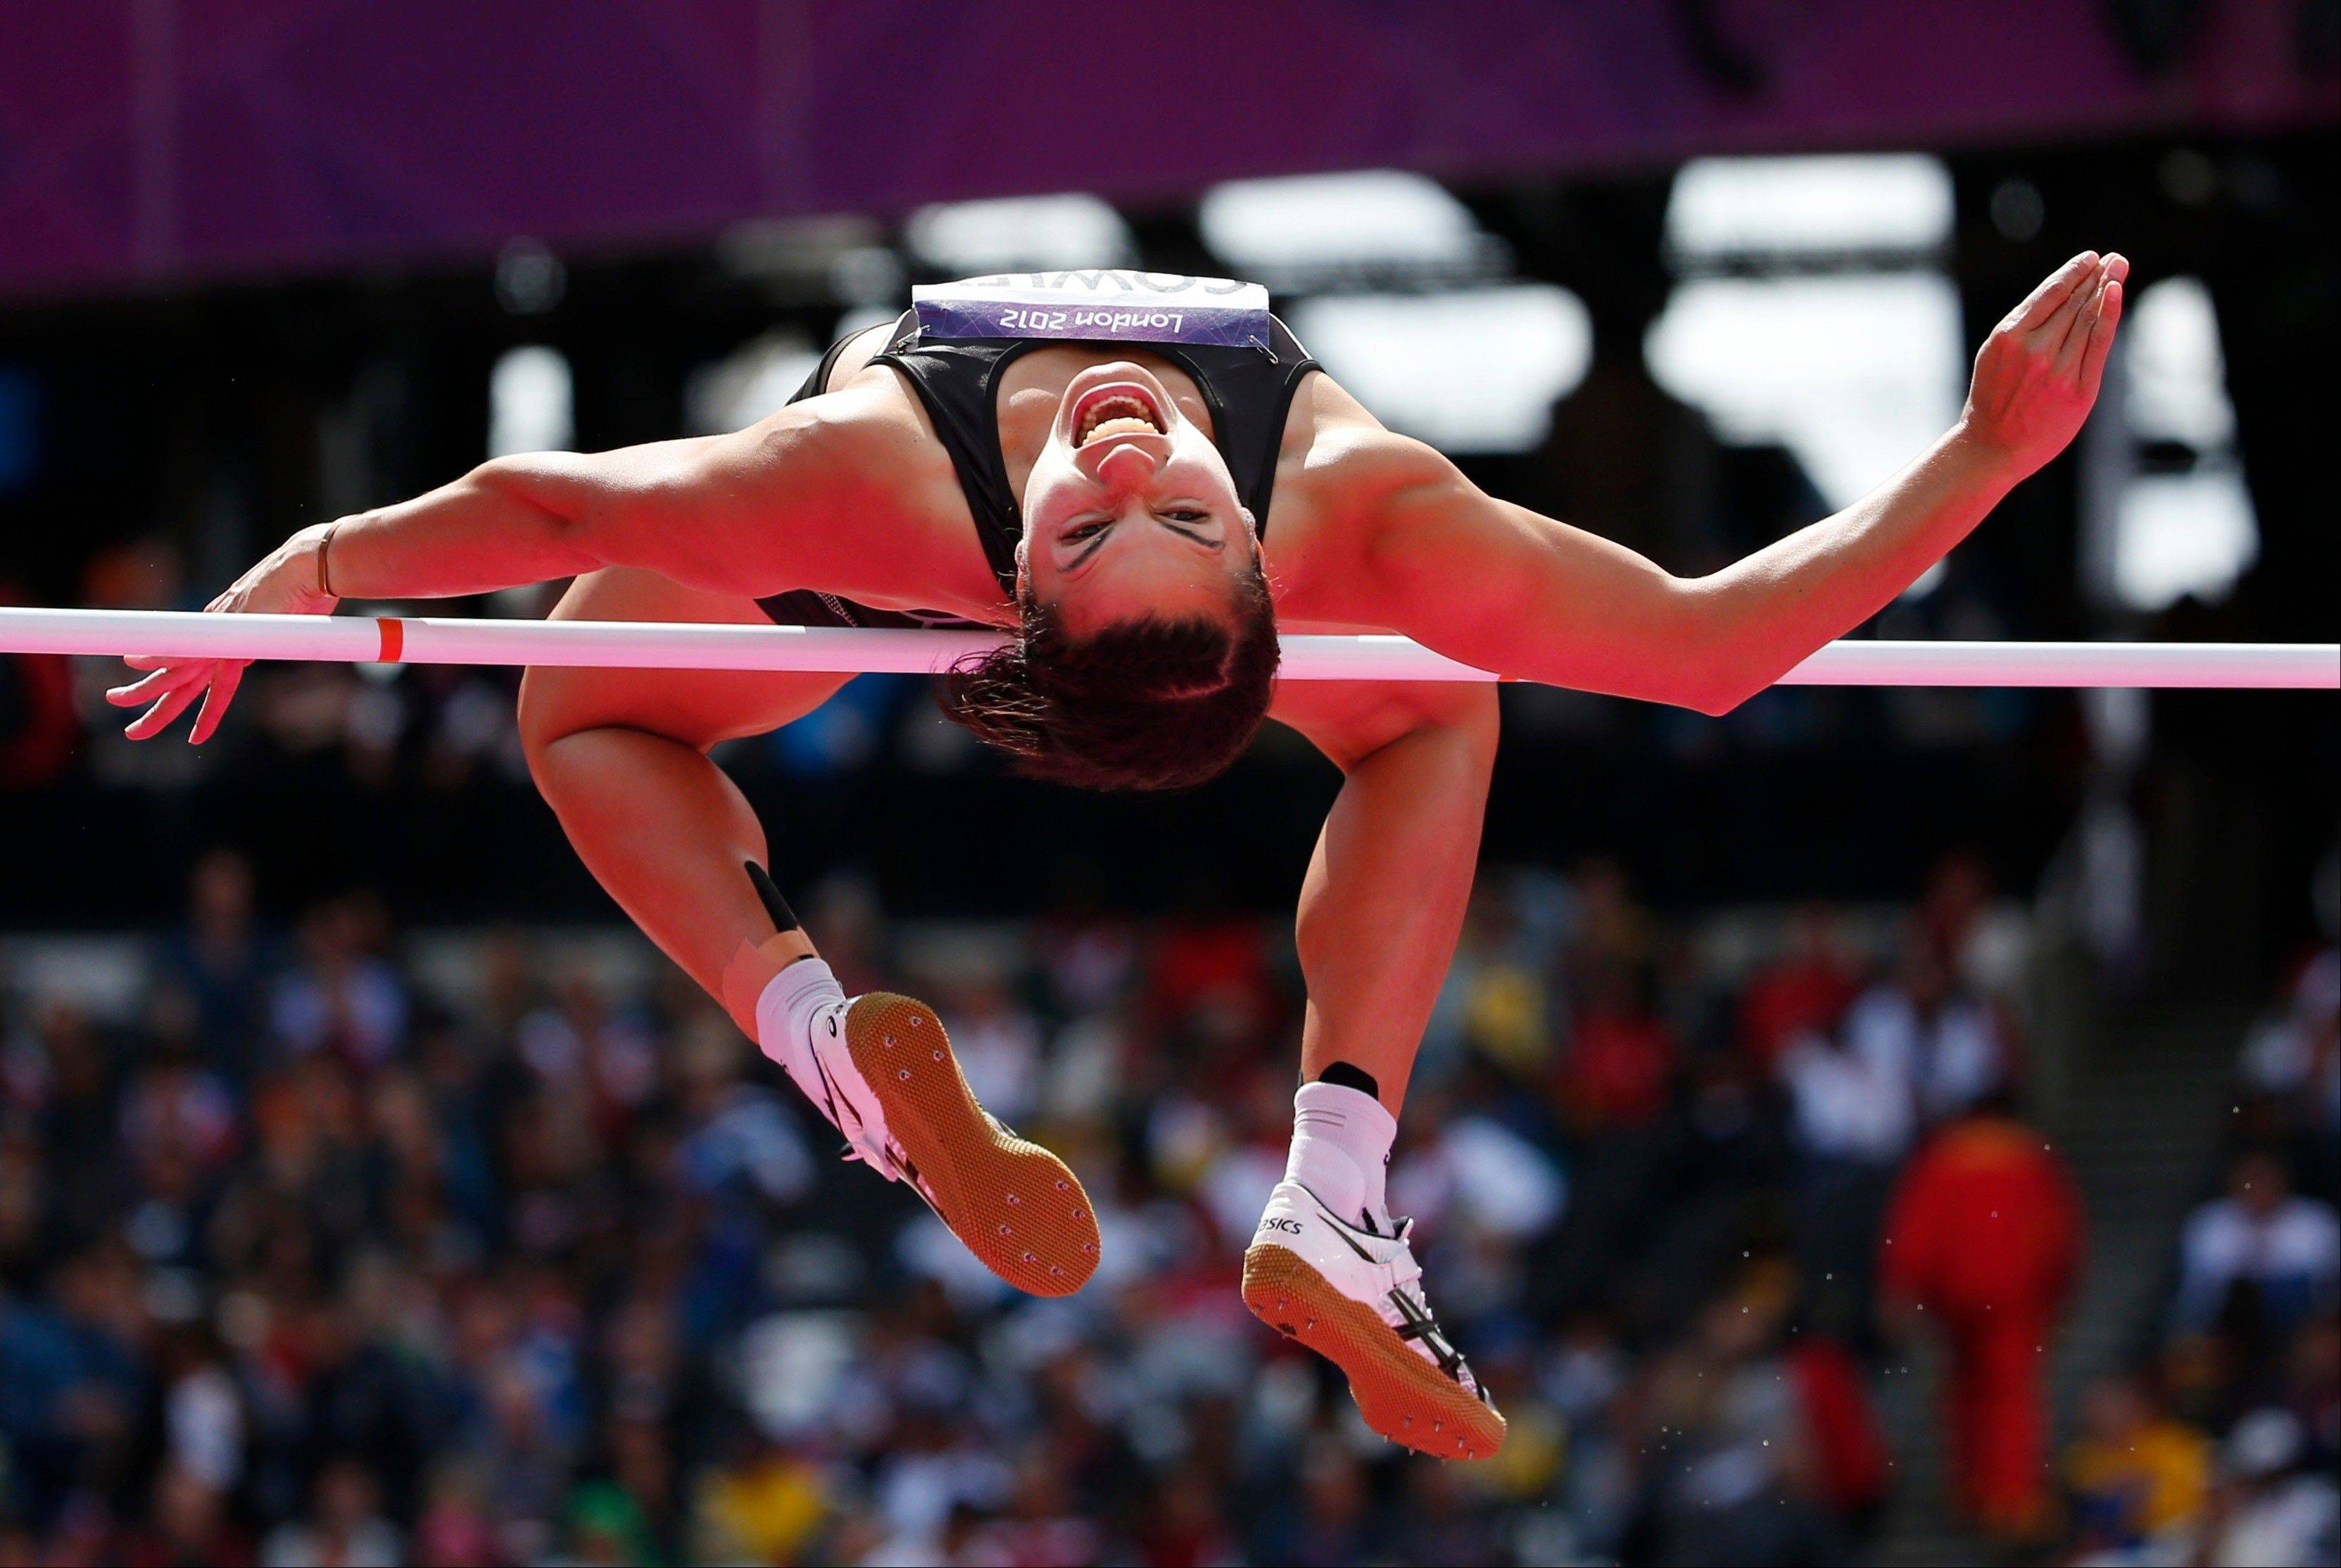 New Zealand's Sarah Cowley makes an attempt in the High Jump of the women's Heptathlon during the athletics in the Olympic Stadium at the 2012 Summer Olympics, London, Friday, Aug. 3, 2012.